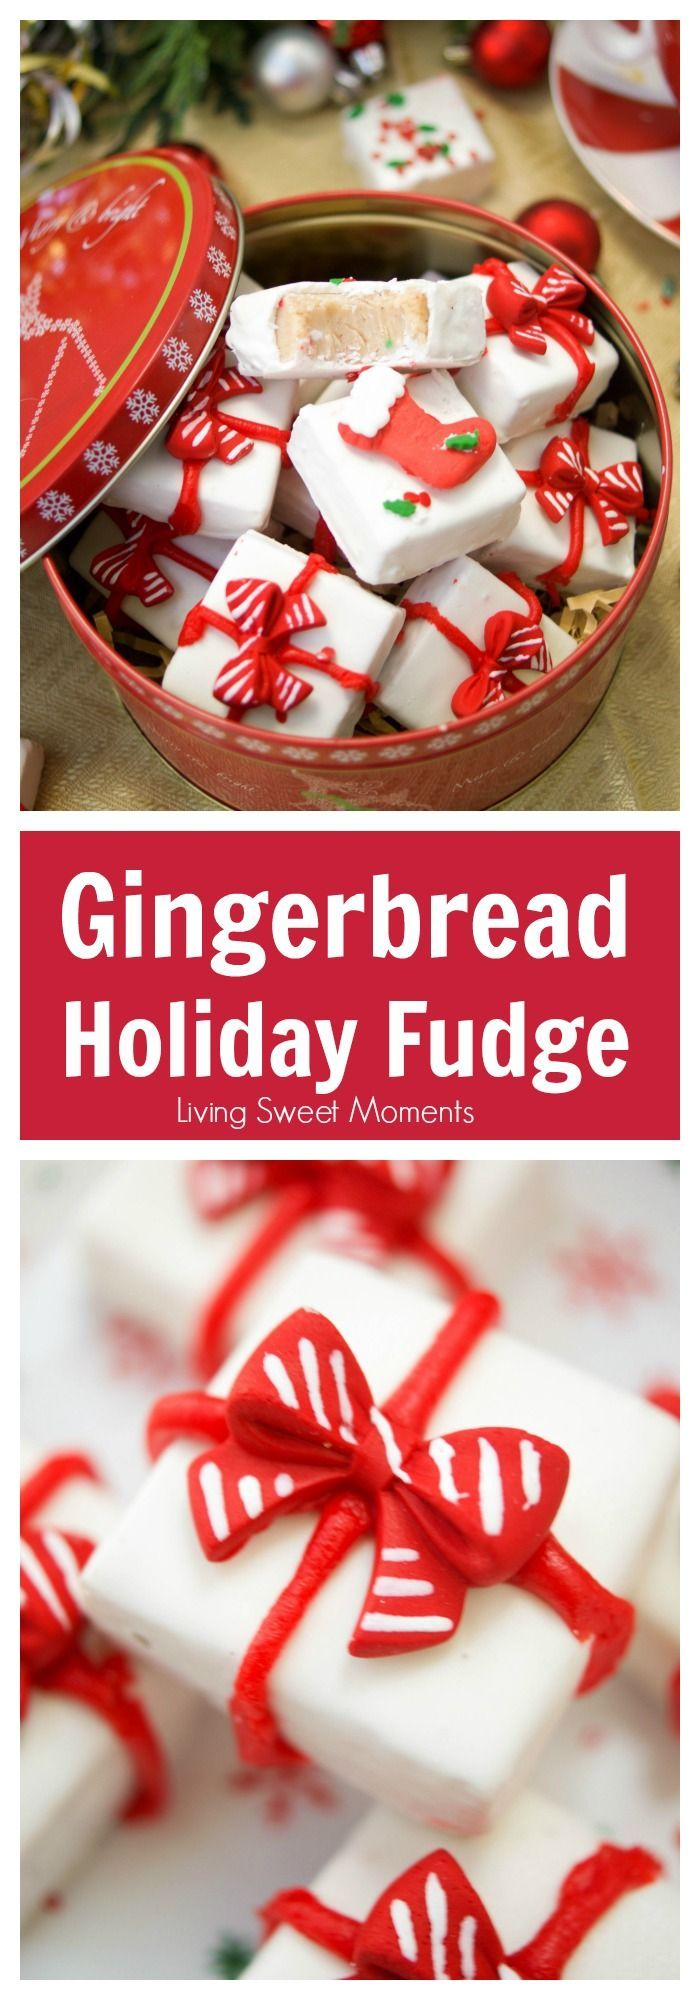 This delicious Gingerbread Holiday Fudge is perfect for Christmas parties and to give as DIY Gifts. Serve it in a present shape or decorate with sprinkles. via @Livingsmoments #ad #YouAreExtraordinary #NewEnglandCoffee